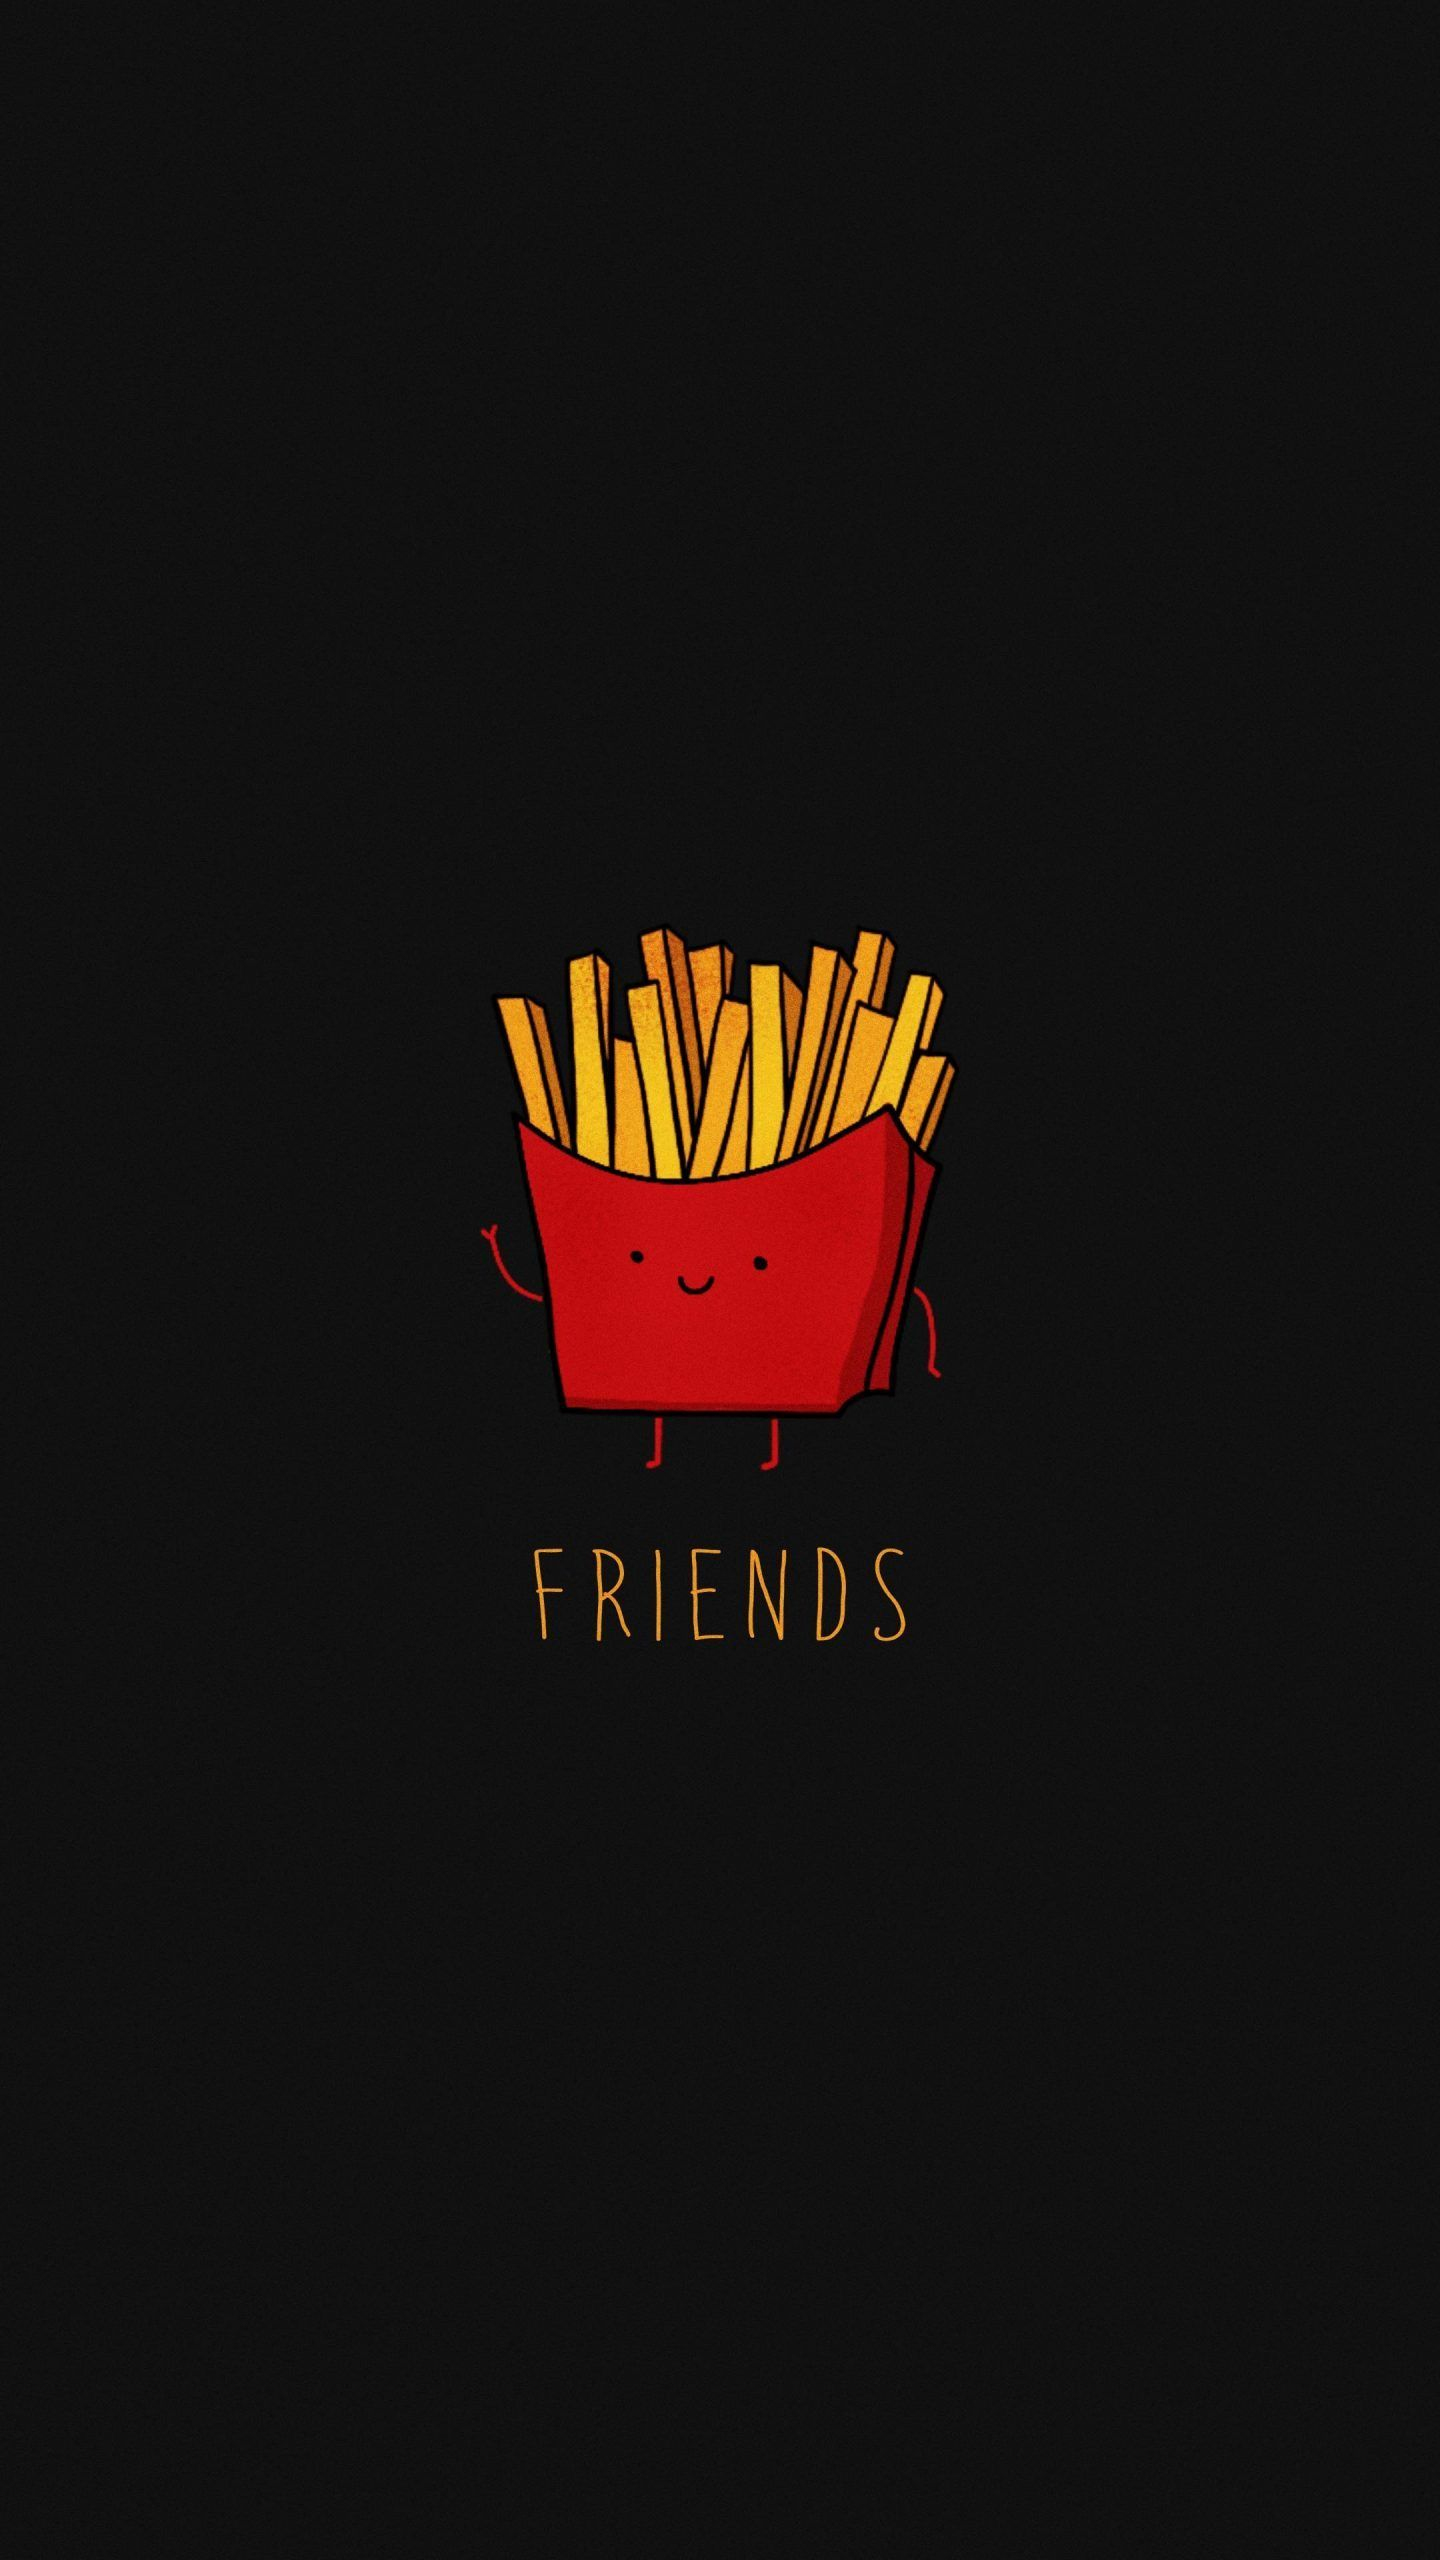 French Fries 4k Wallpaper 2160x3840 Iphone Wallpaper Images Dark Phone Wallpapers Funny Iphone Wallpaper